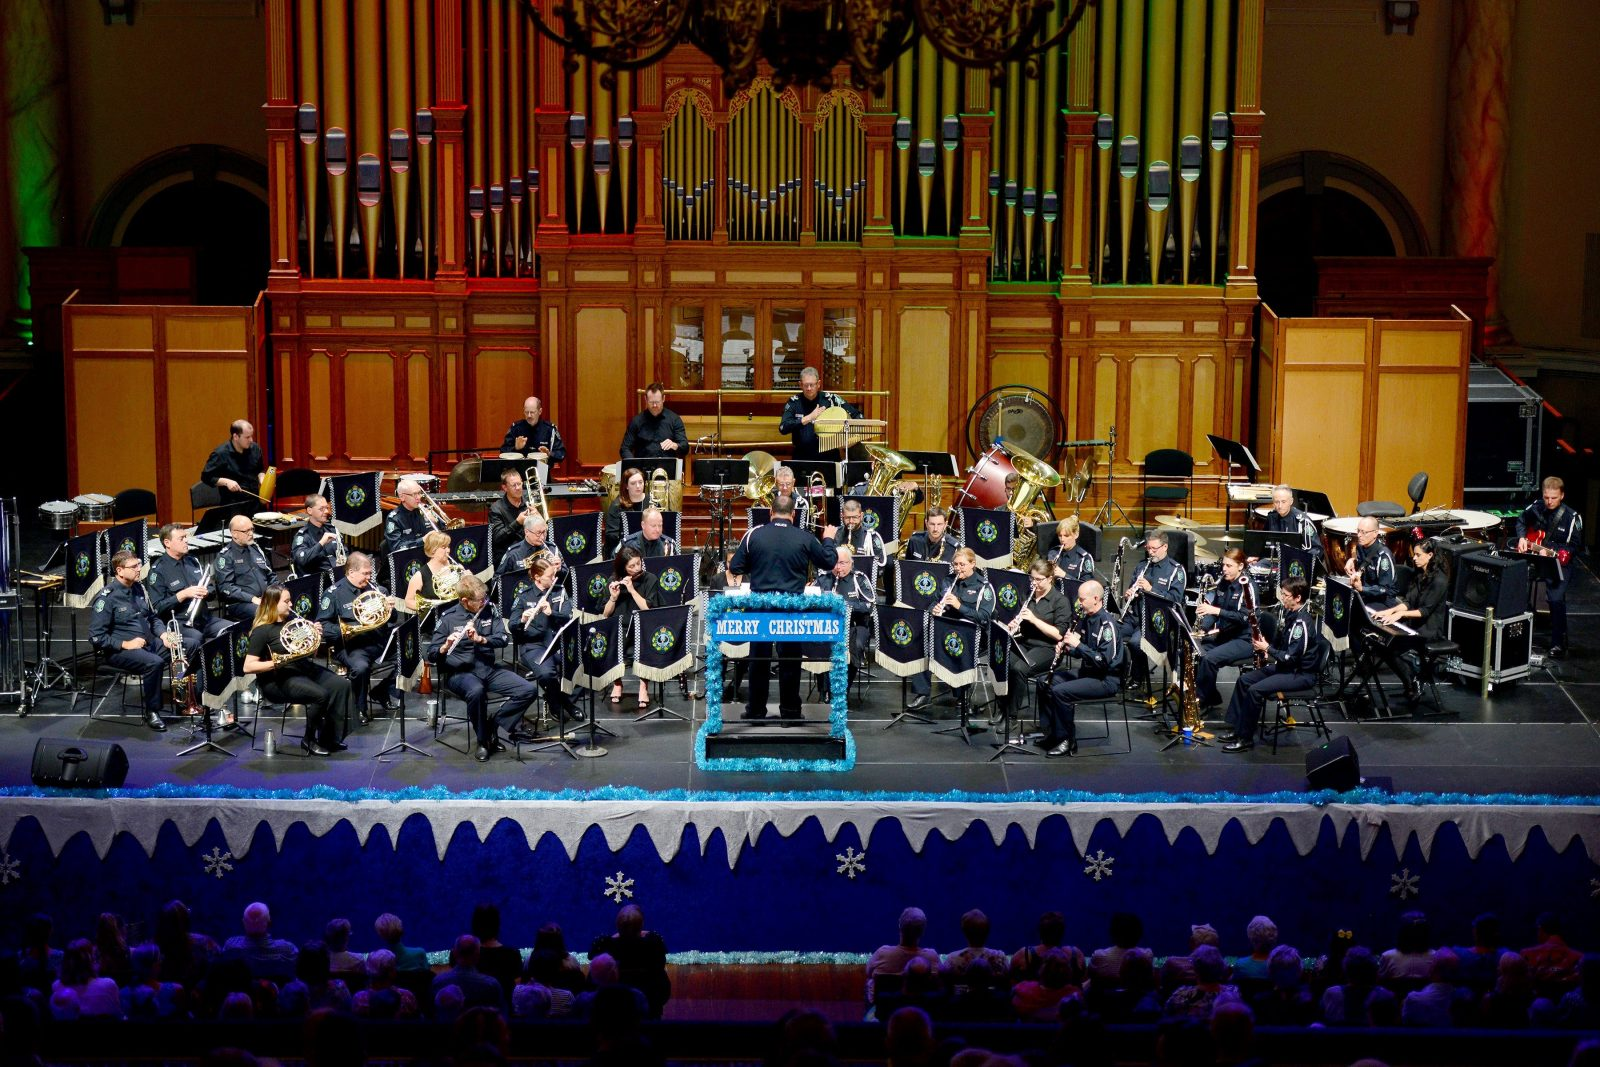 Police Band on stage at the Adelaide Town Hall